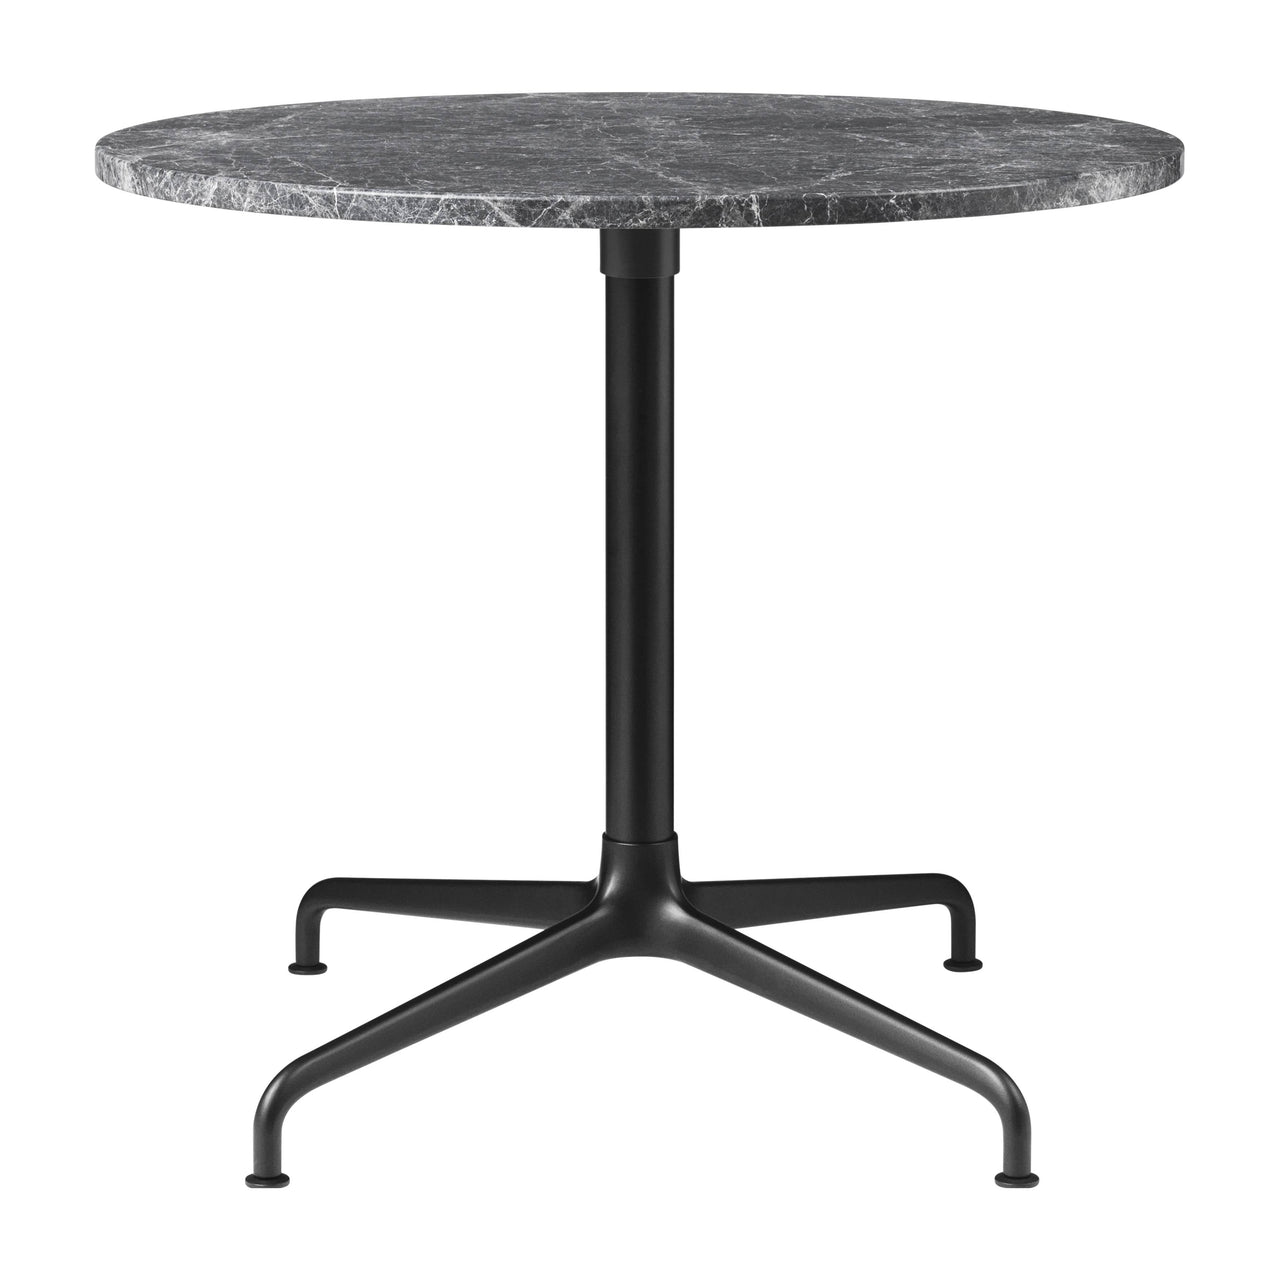 Beetle Lounge Table: Round + Small + Grey Emperador Marble + Black Matte Base